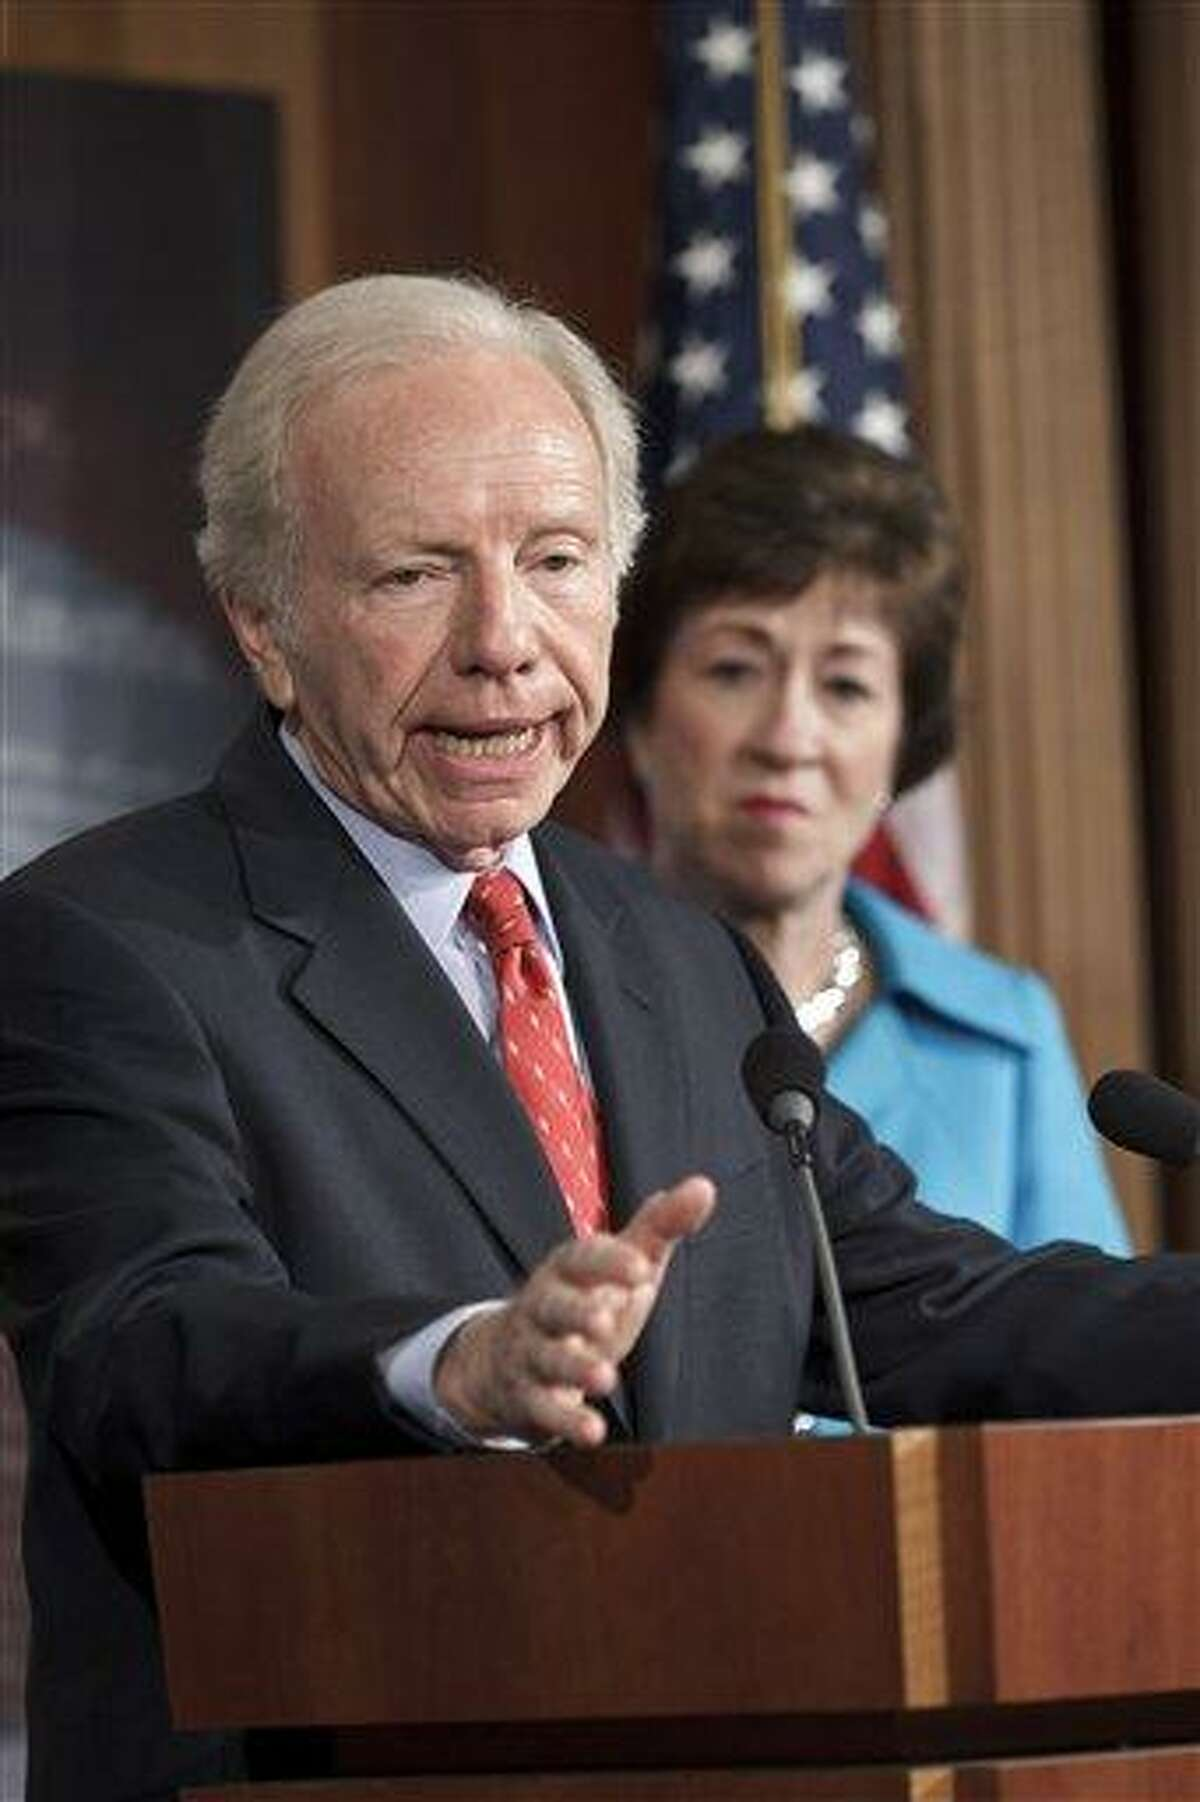 Senate Homeland Security and Governmental Affairs Committee Chairman Sen. Joseph Lieberman, I-Conn., accompanied by the committee's ranking member Sen. Susan Collins, R-Maine, announces during a press conference July 24 that the Senate will take up legislation to protect critical U.S. industries and other corporate networks from cyberattacks and electronic espionage. Associated Press